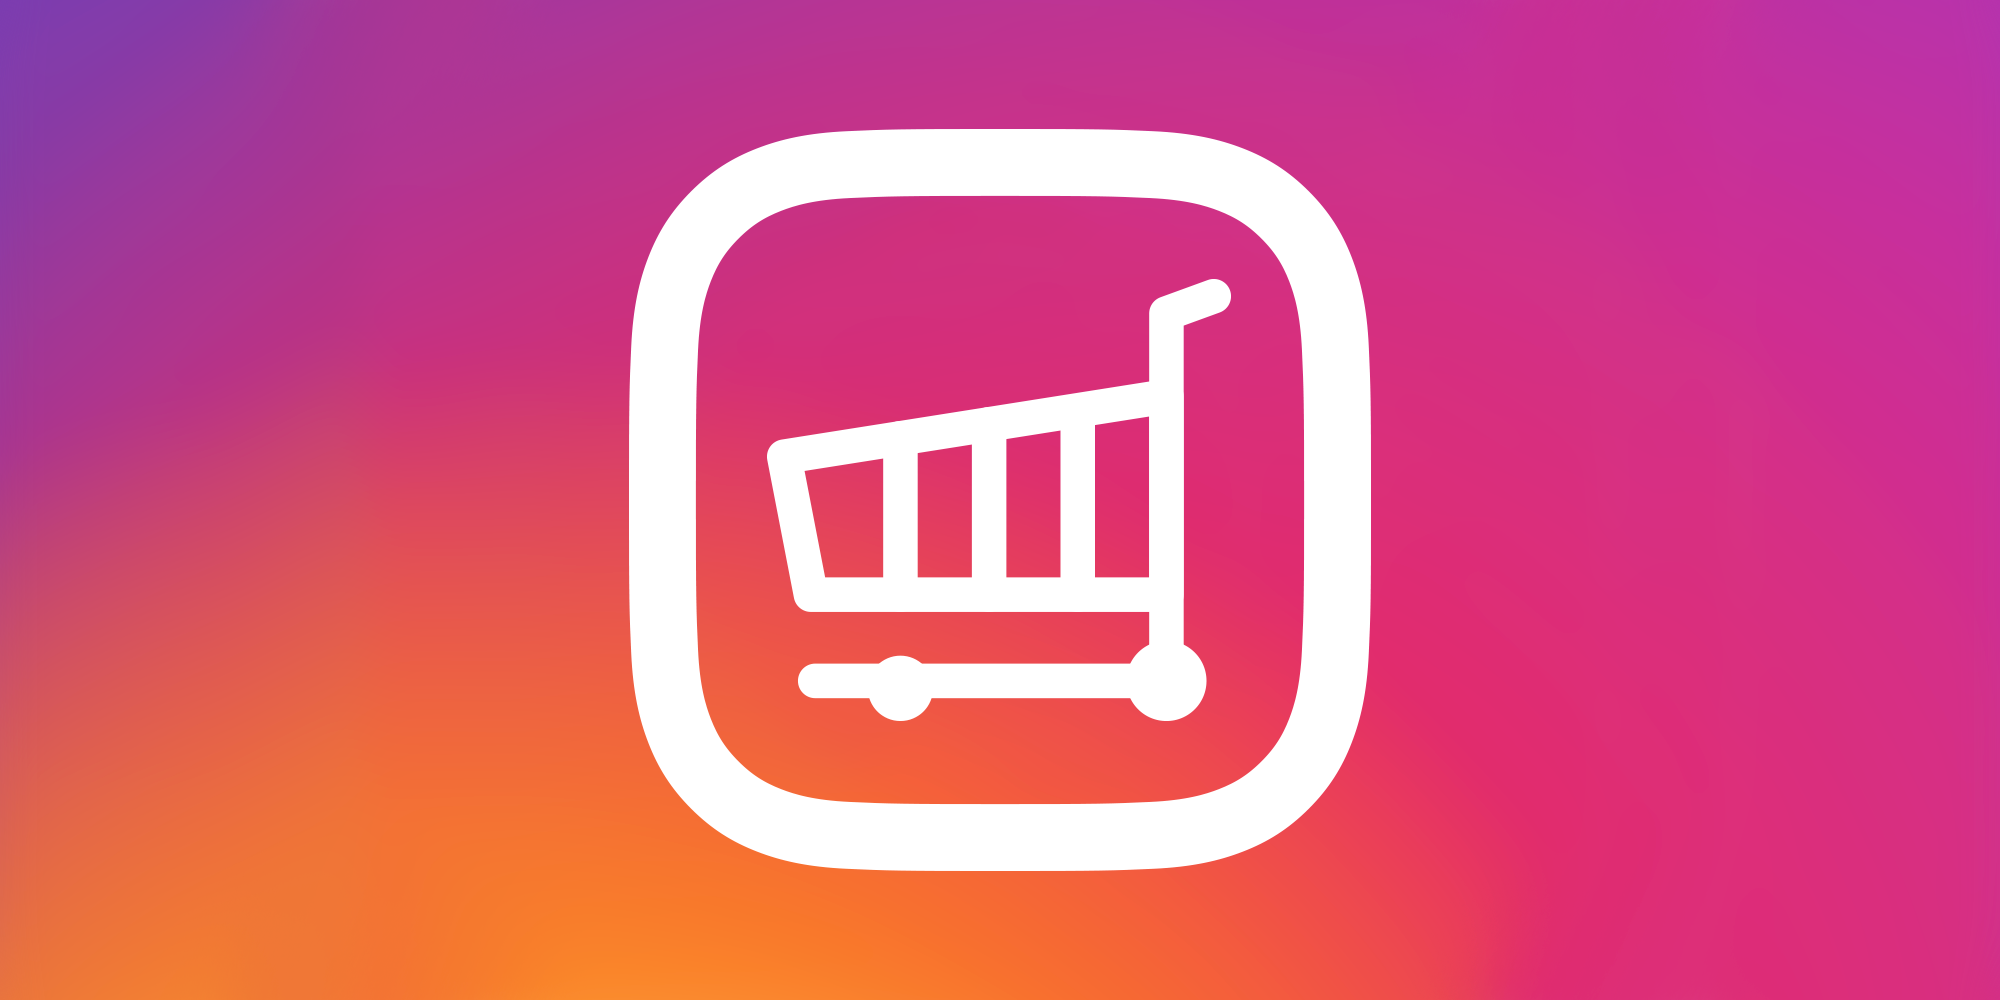 Instagram Now Offers In-App Purchases for Fashion Fans, So You Never Have to Leave Your Feed Again